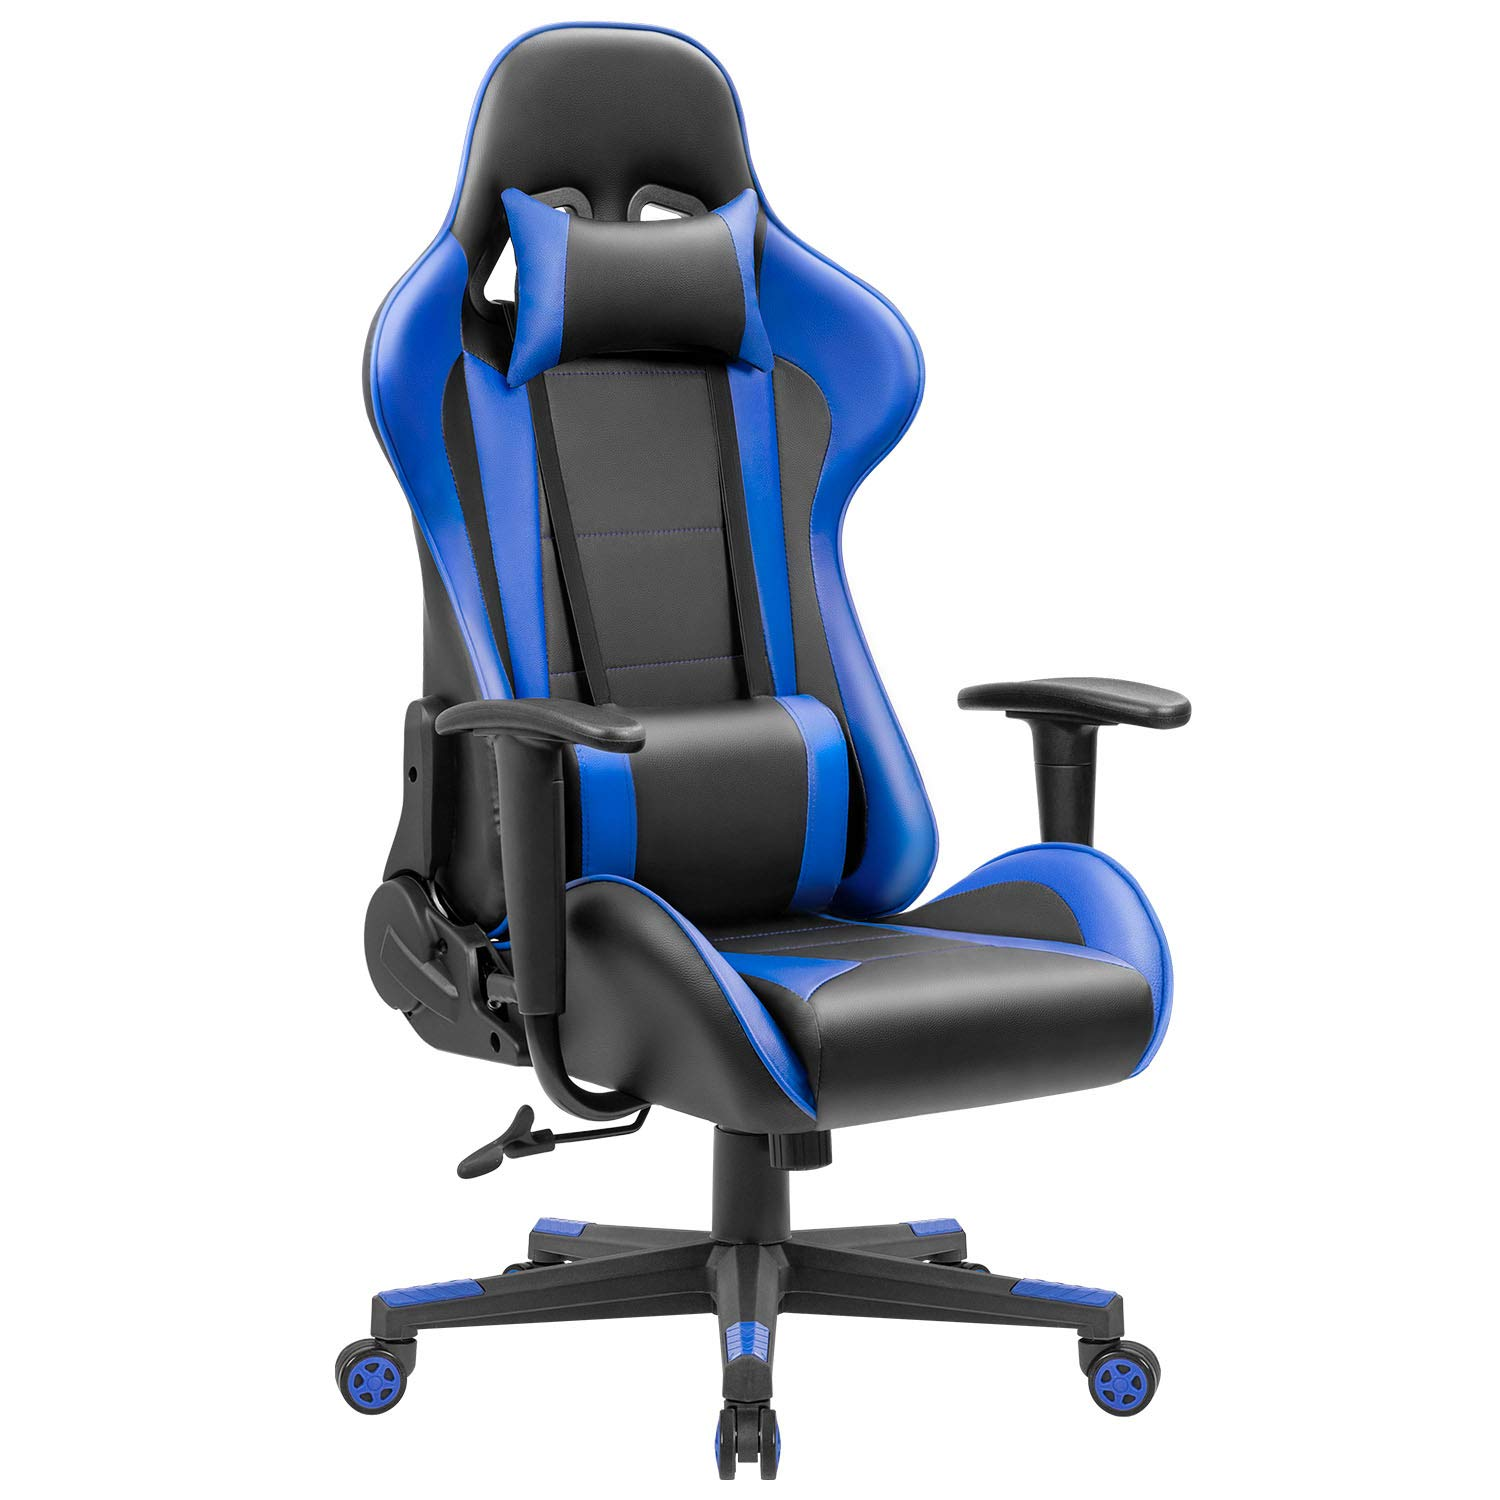 JUMMICO Gaming Chair Ergonomic High-Back Racing Chair PU Leather Executive Computer Office Desk Chair with Headrest and Lumbar Support (Blue)